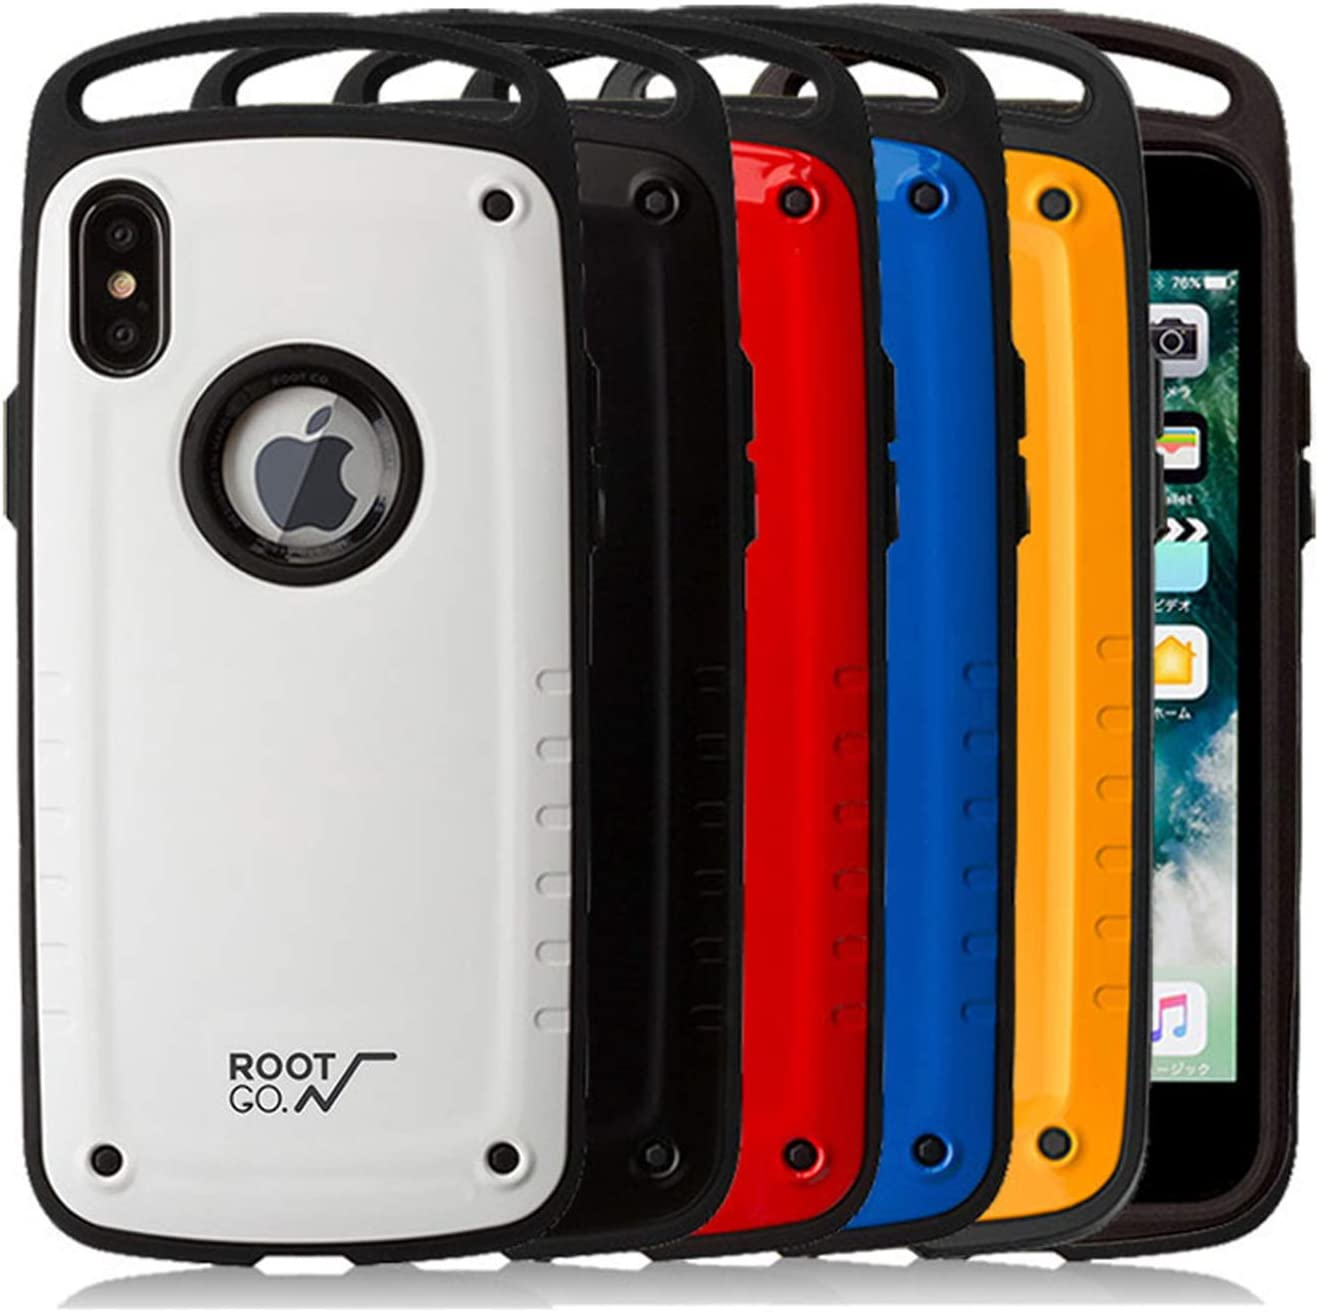 iPhone case - Ultra Protection Military Grade Drop and Shock Drop Proof Impact Resist Extreme Durable iPhone Case (Blue, iPhone 7/8)